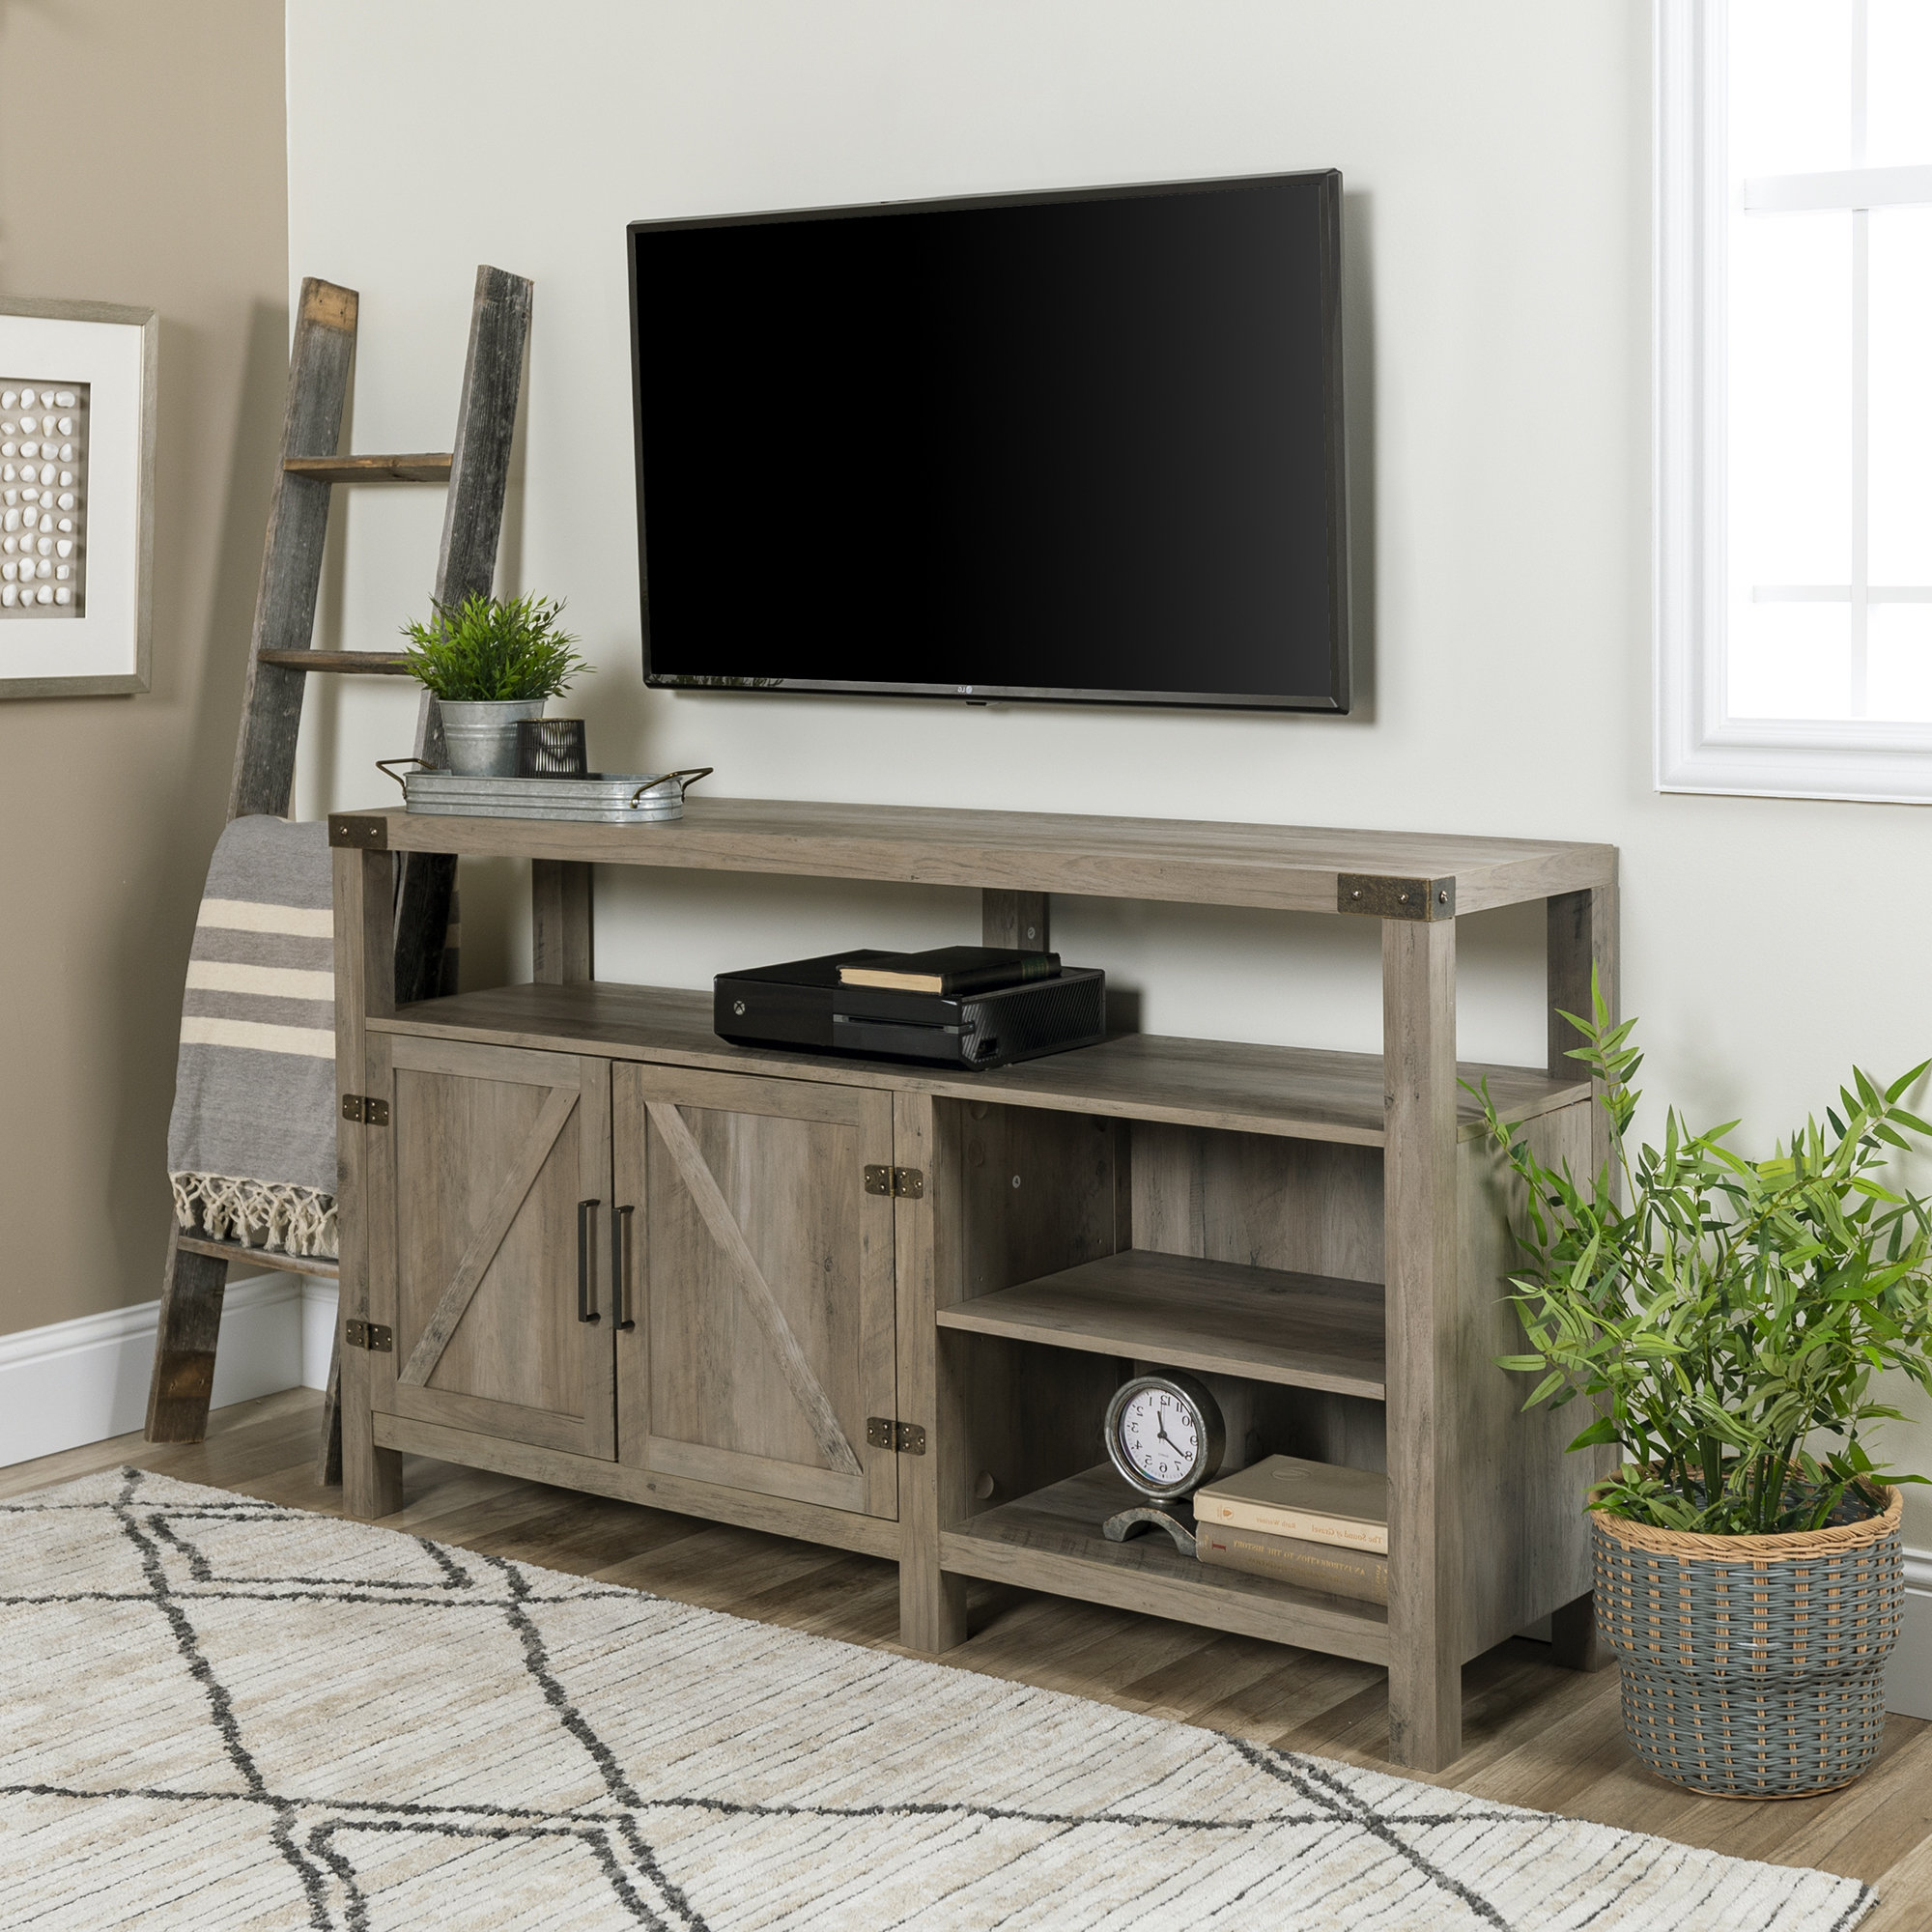 Tall Tv Stands You'll Love | Wayfair With Regard To Edwin Black 64 Inch Tv Stands (View 3 of 20)